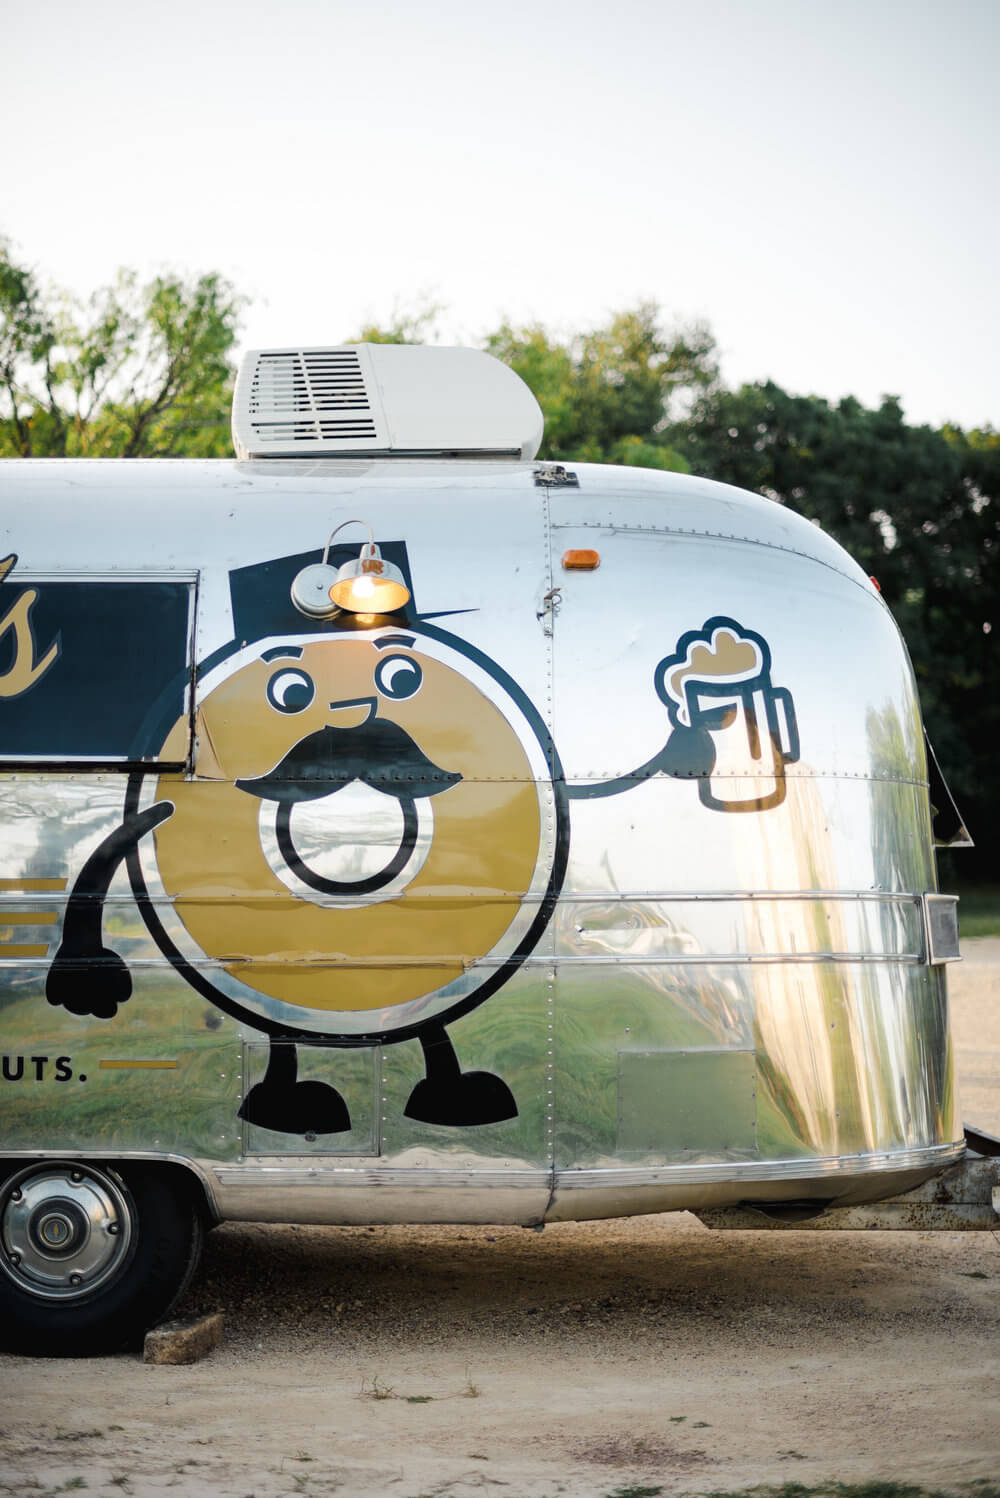 The couple hired Gourdough's food truck to cater their wedding.